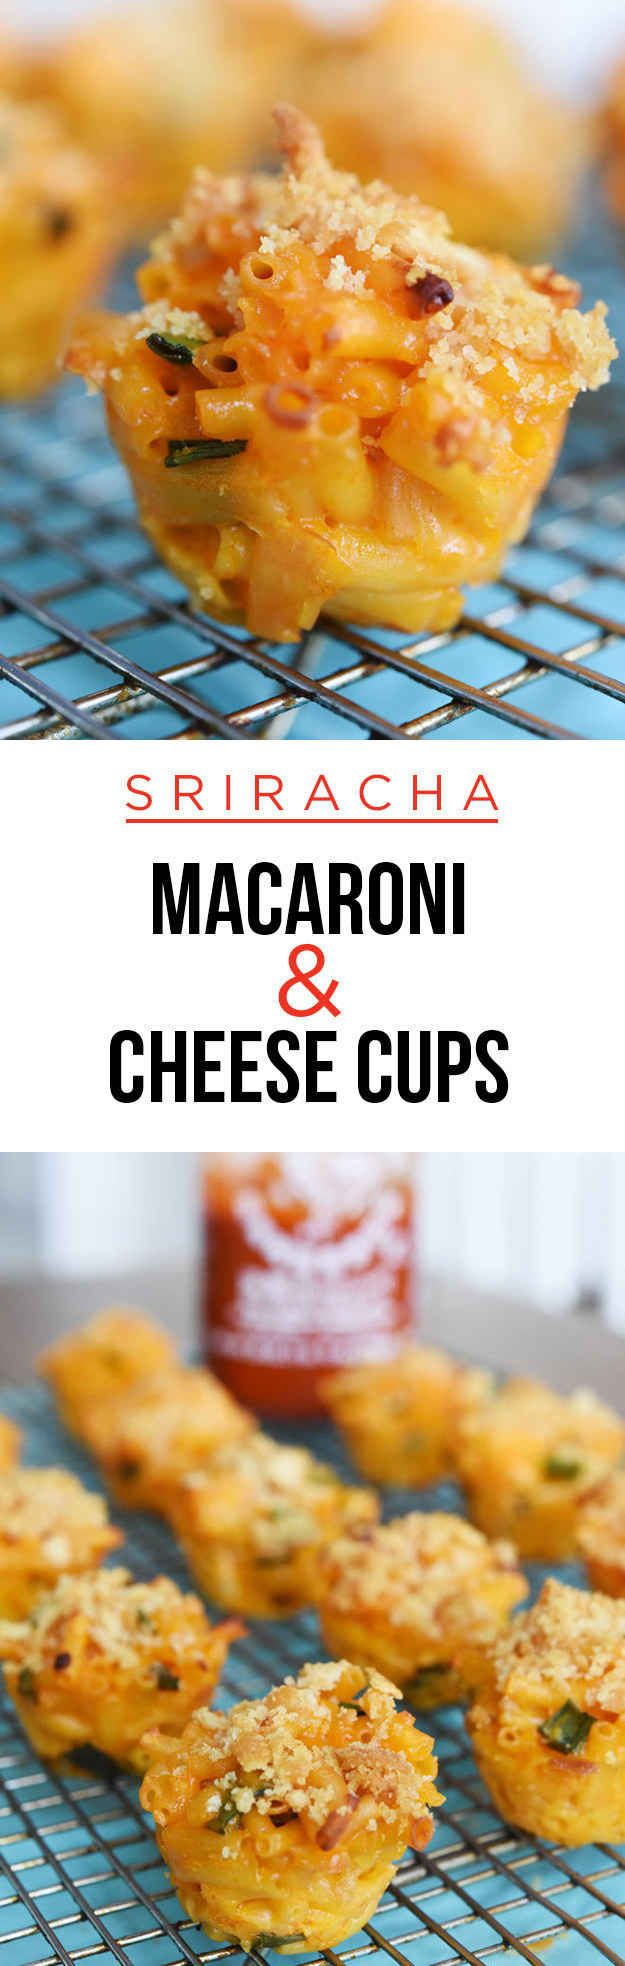 96 Best Snacks Camilan Images On Pinterest Simple Recipes Kerupuk Kemplang Ikan By Ff Pgp Sriracha Macaroni And Cheese Cups